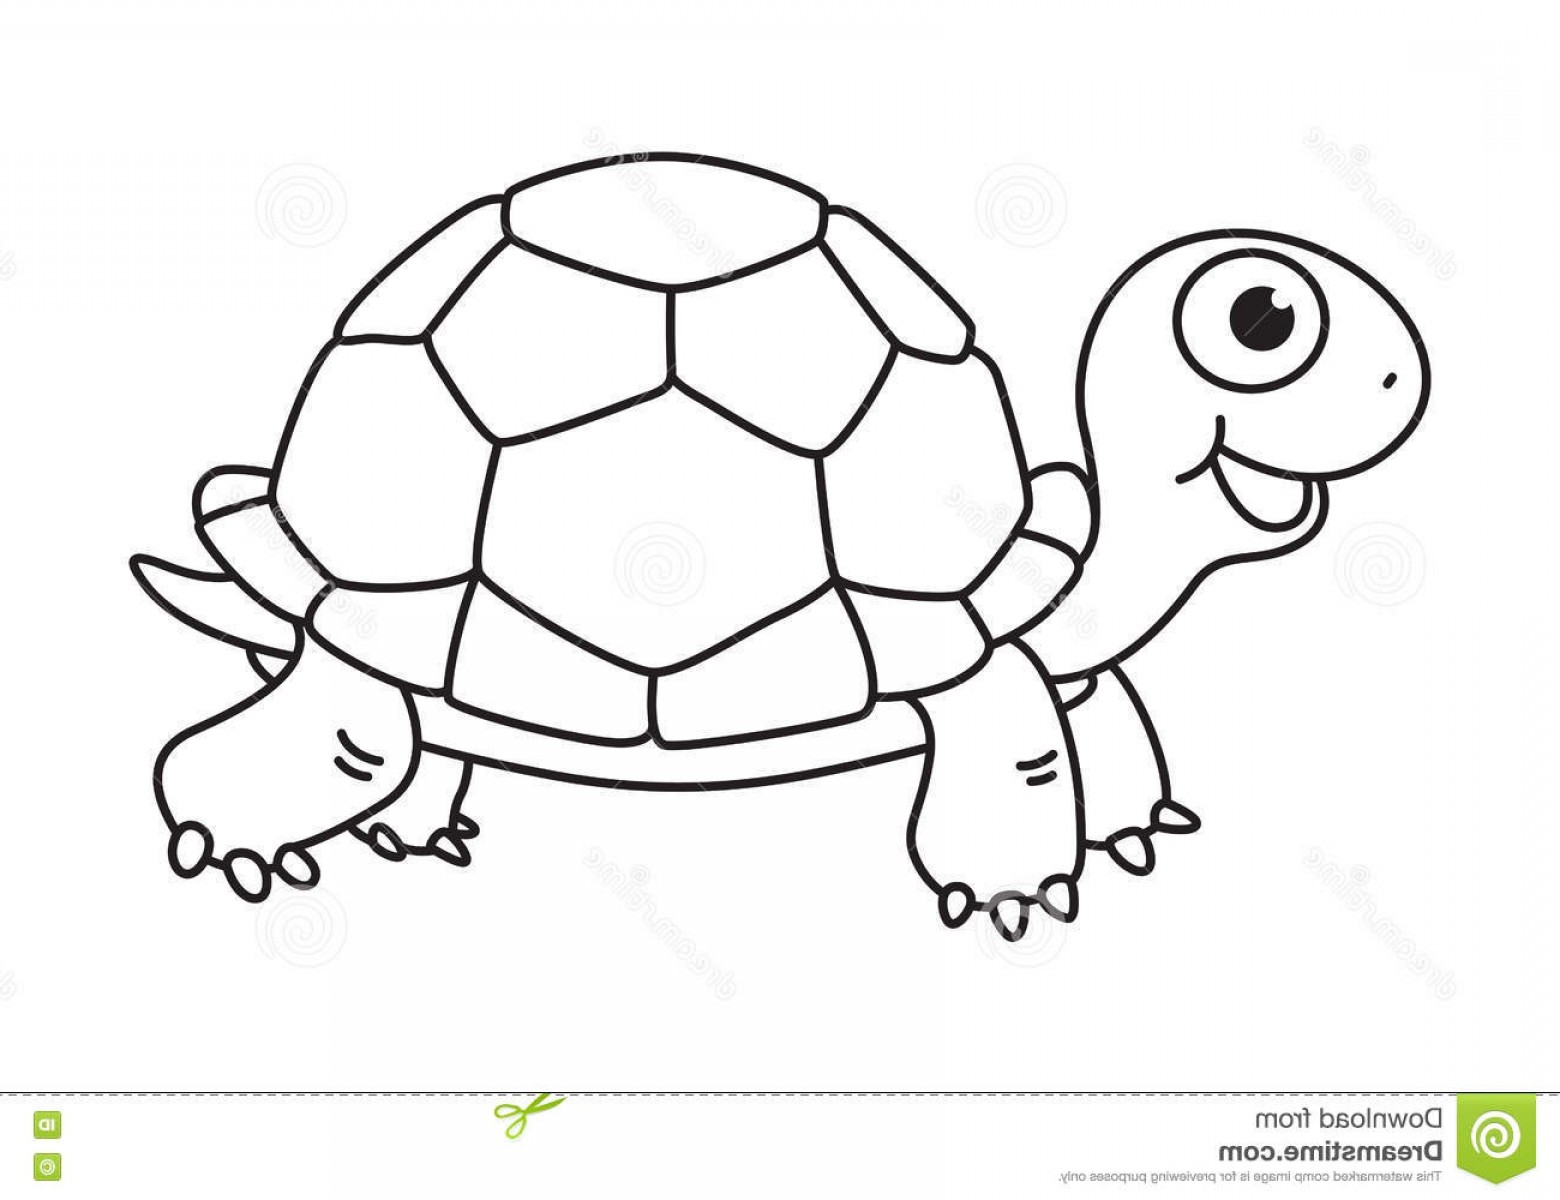 Stock Illustration Cartoon Turtle Vector Clip Art Eps Image.